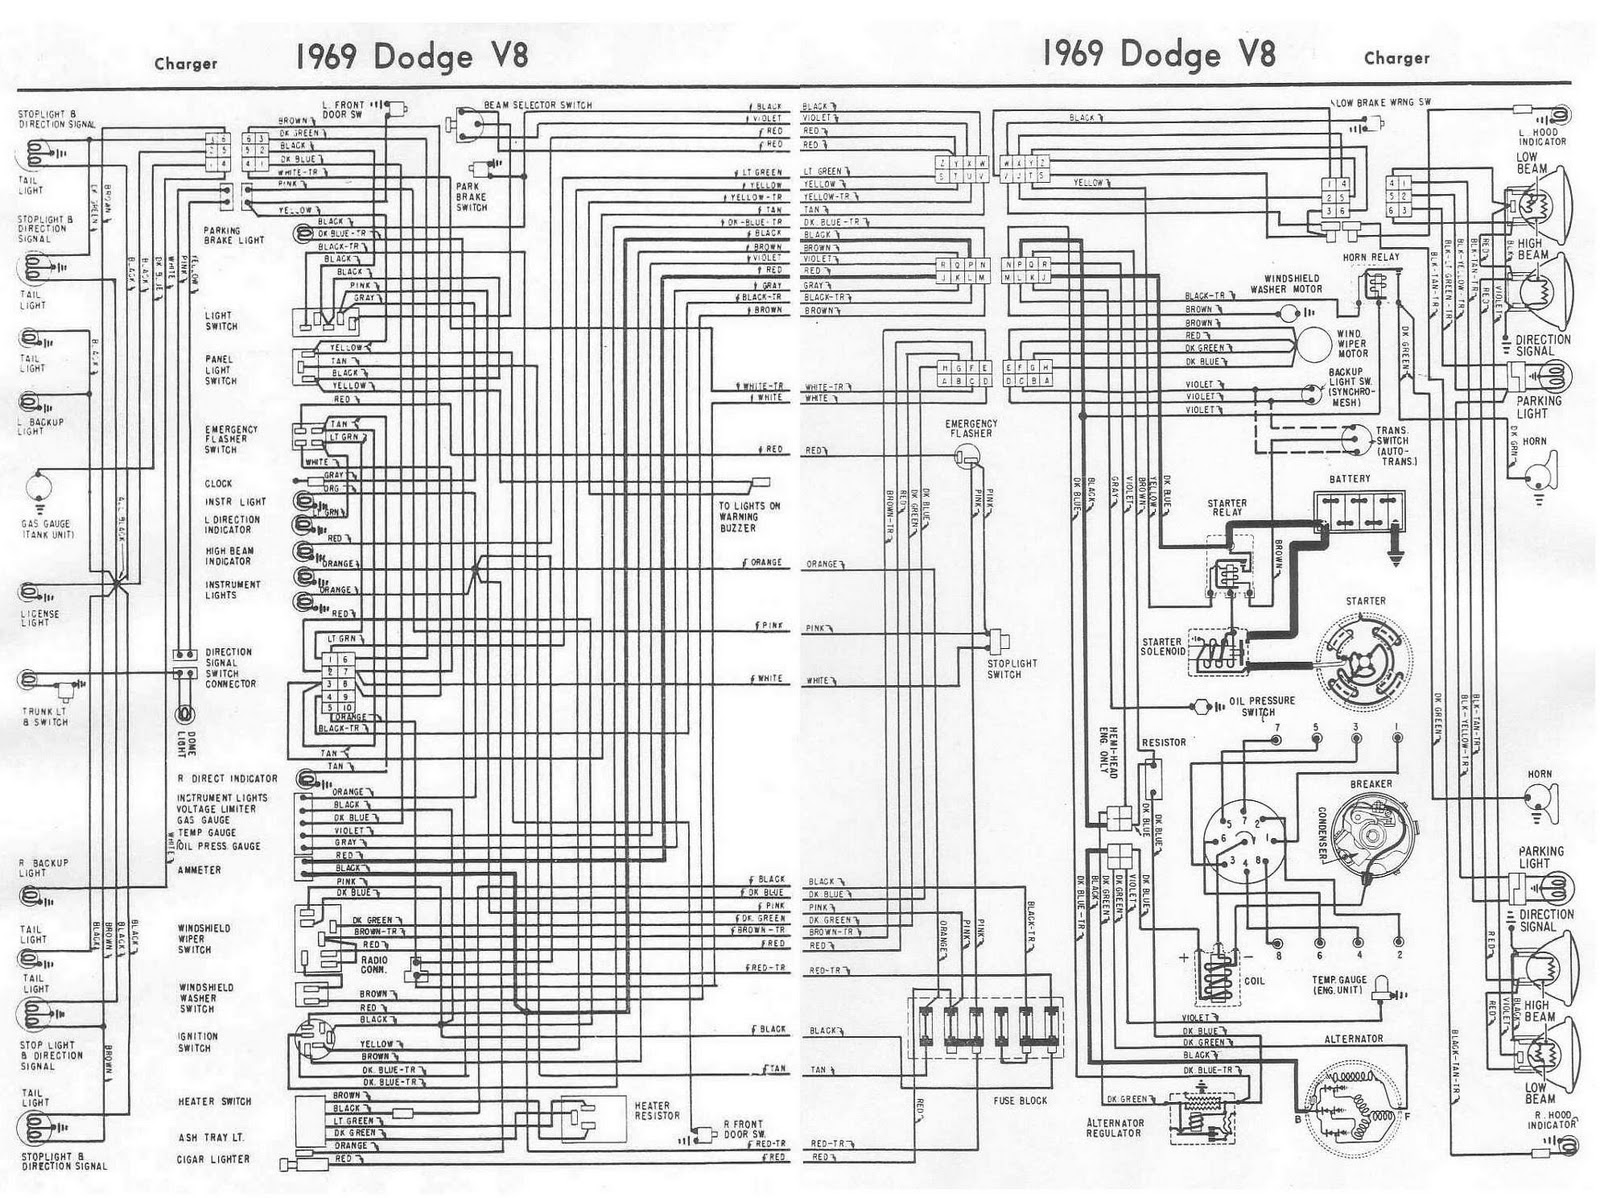 DIAGRAM] Travco Dodge Wiring Diagram FULL Version HD Quality Wiring Diagram  - WEBUMLDIAGRAMS.BELEN-RODRIGUEZ.ITbelen-rodriguez.it